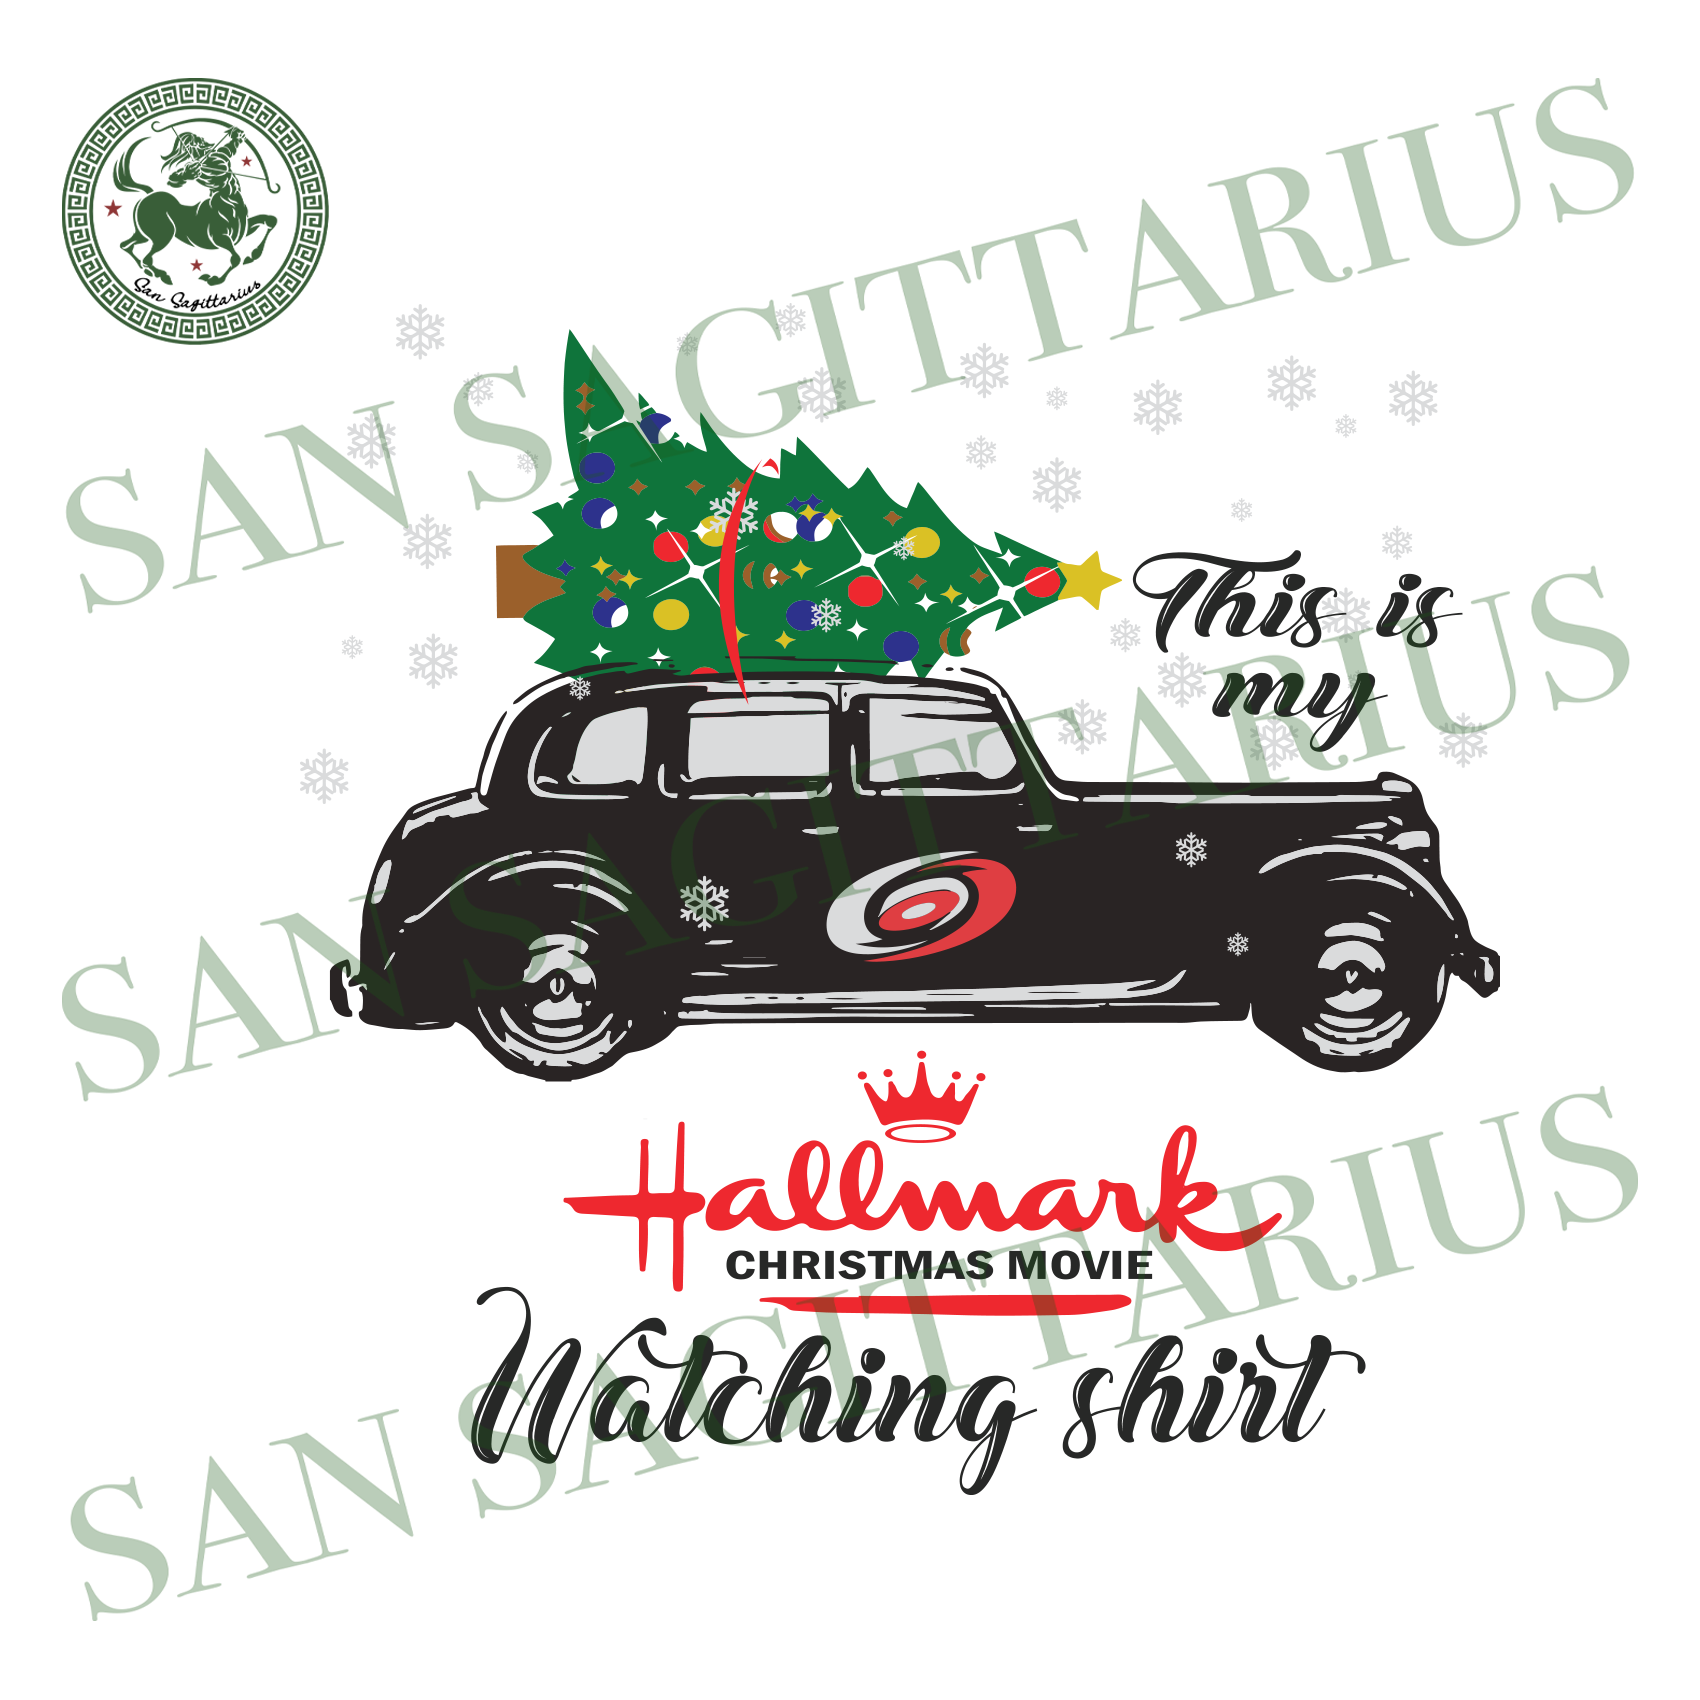 Carolina Hurricanes This Is My Hallmark Christmas Movie Watching Shirt, Sport Svg, Christmas Svg, Carolina Hurricanes Svg, NHL Sport Svg, Carolina Hurricanes NHL Svg, Carolina Hurricanes NHL